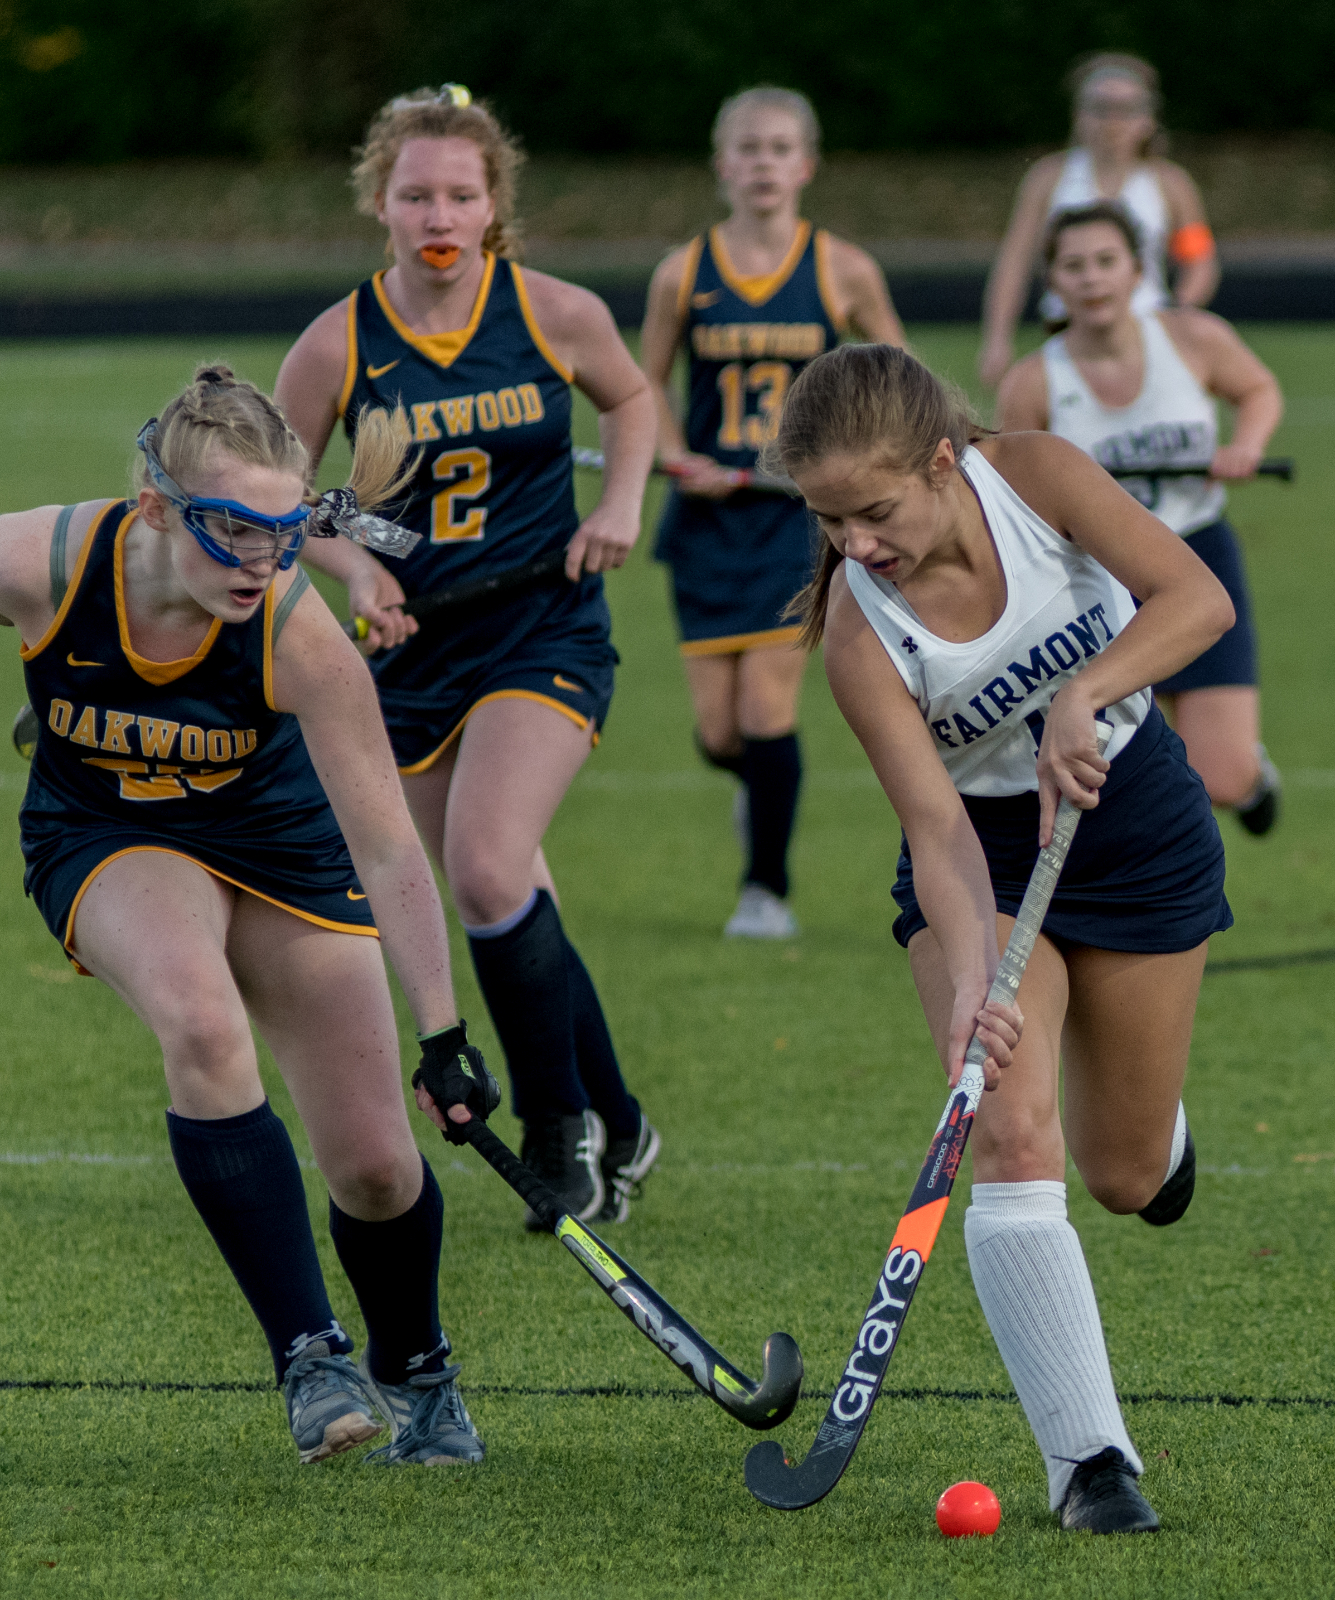 Photo highlights from Fairmont Field Hockey vs Oakwood 10-13-2020